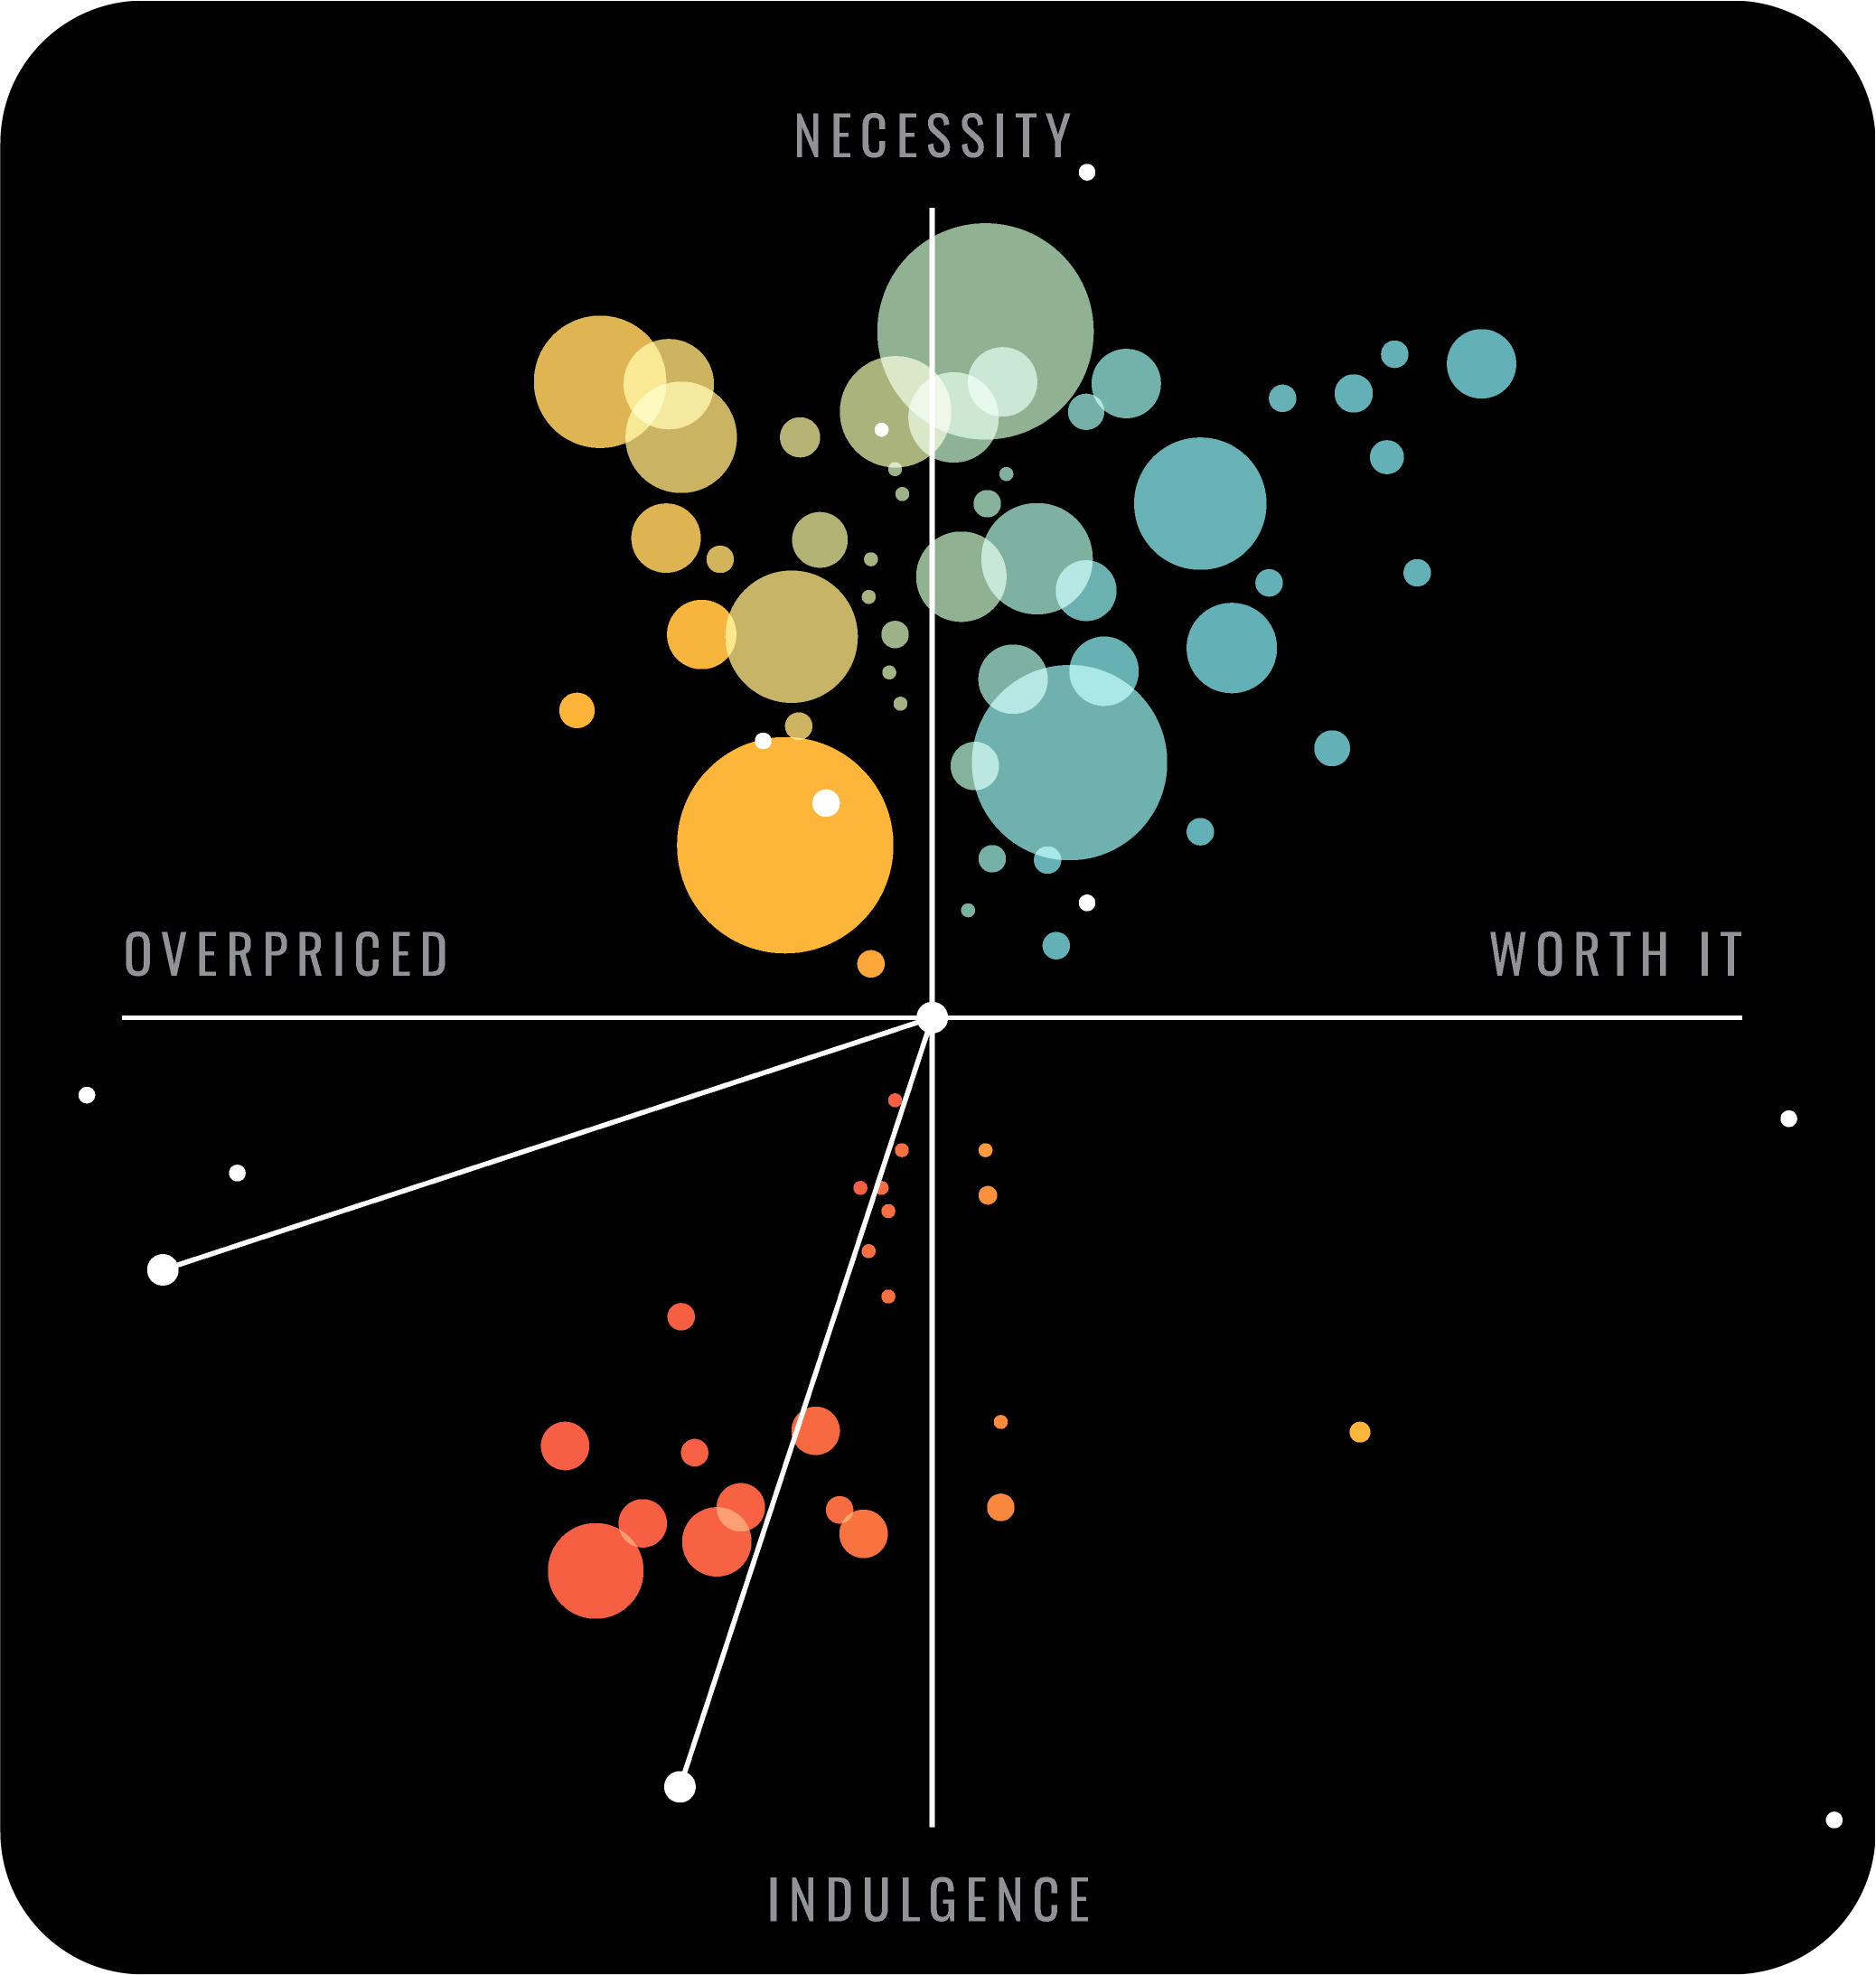 Purchases Scatterplot - Each dots represent a purchase and the sizes are determined by the price, and the color represents the spending category.